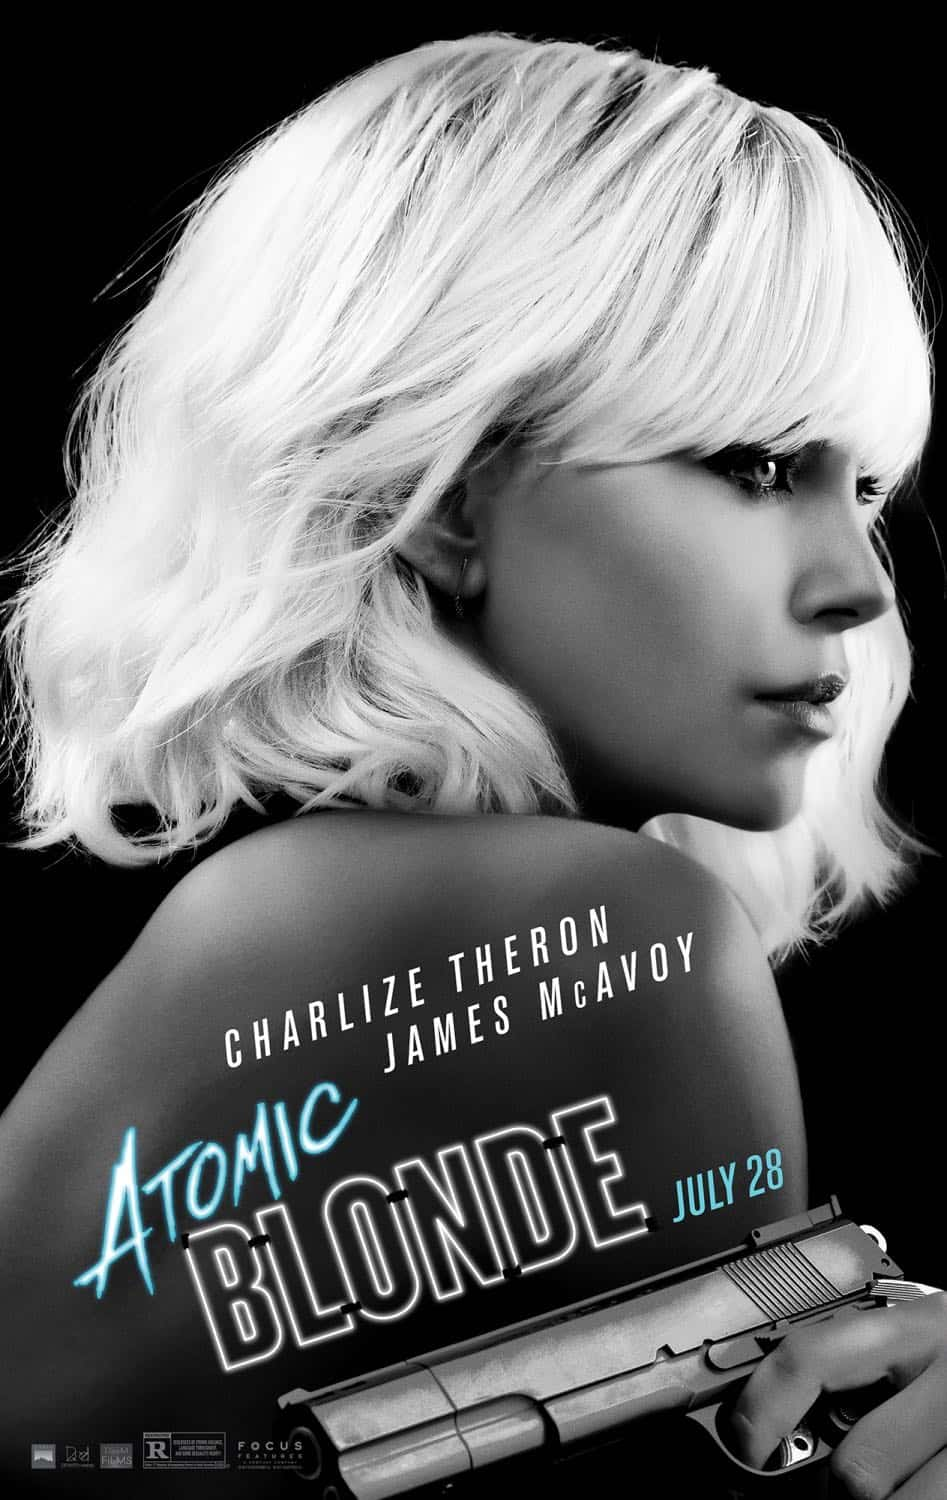 New-Atomic-Blonde-Poster-Charlize Theron